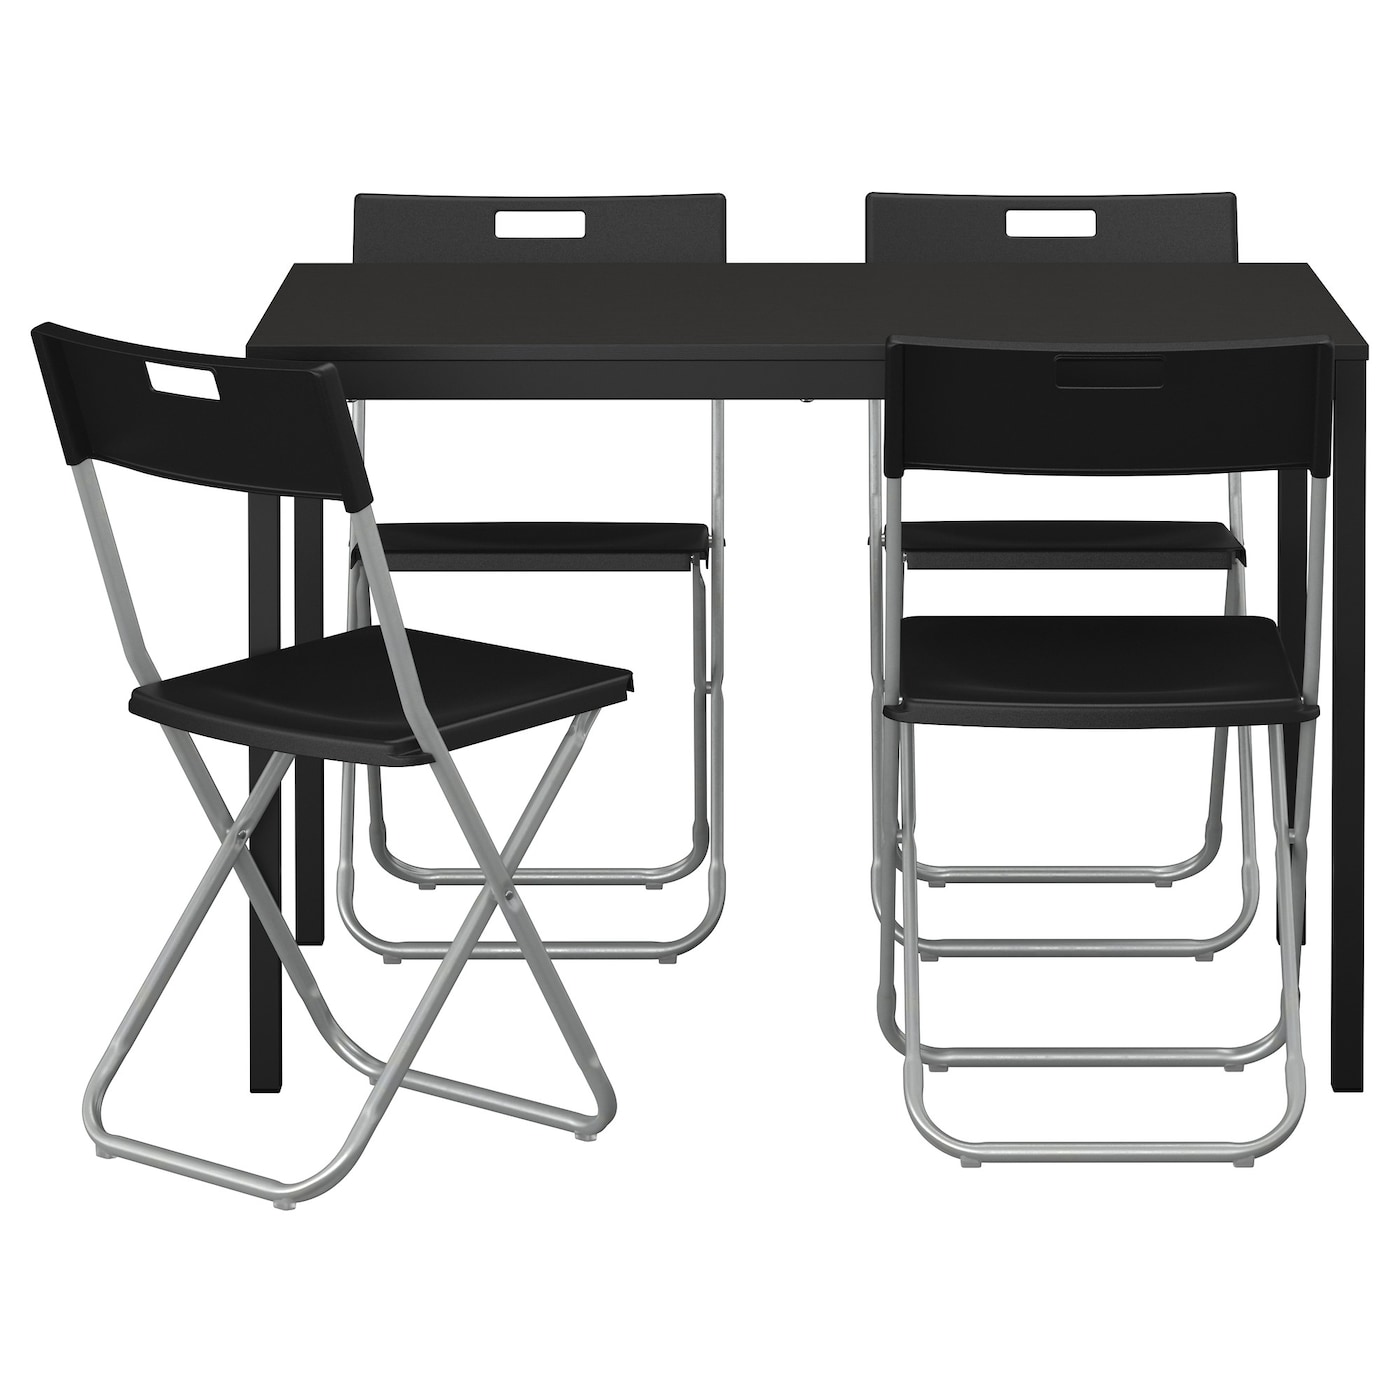 "GUNDE T""REND– Table and 4 chairs Black 110 cm IKEA"